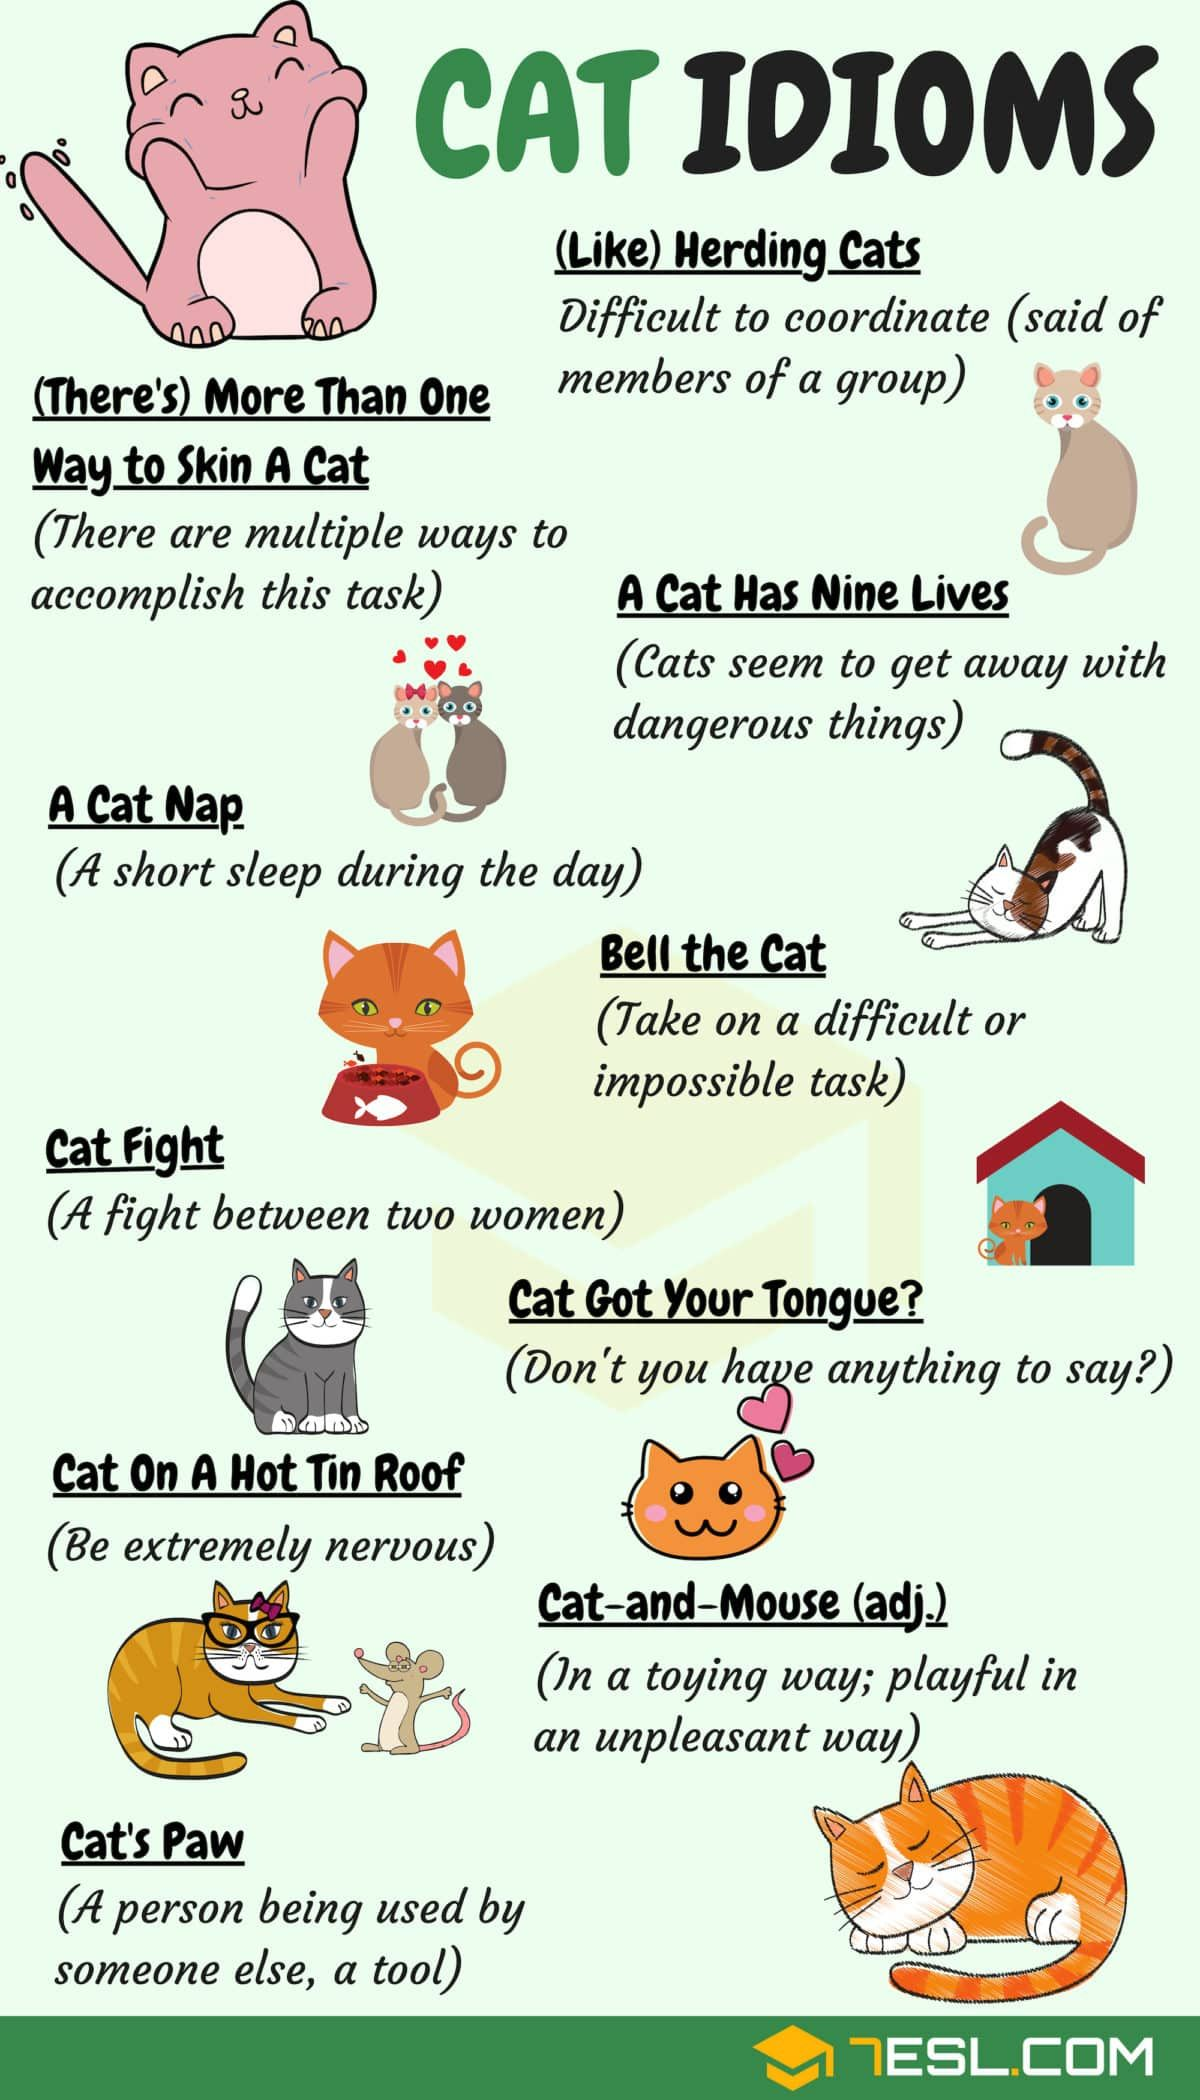 Cat Idioms 30 Useful Cat Idioms Amp Sayings In English